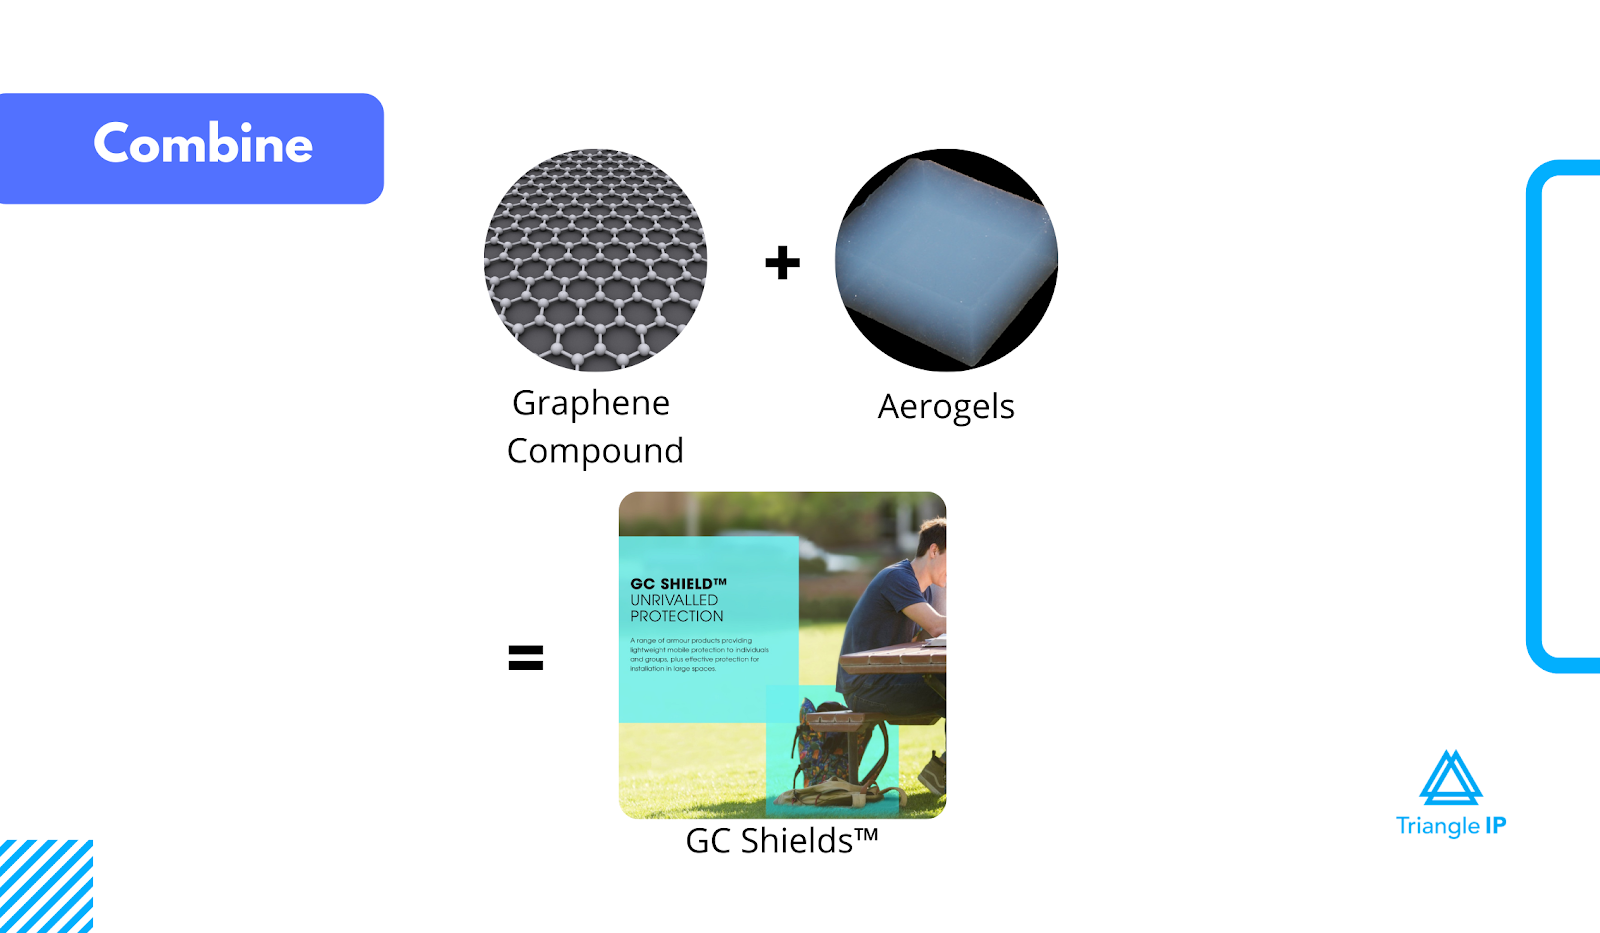 Innovations in Aerogel - Combine - Graphene Composites